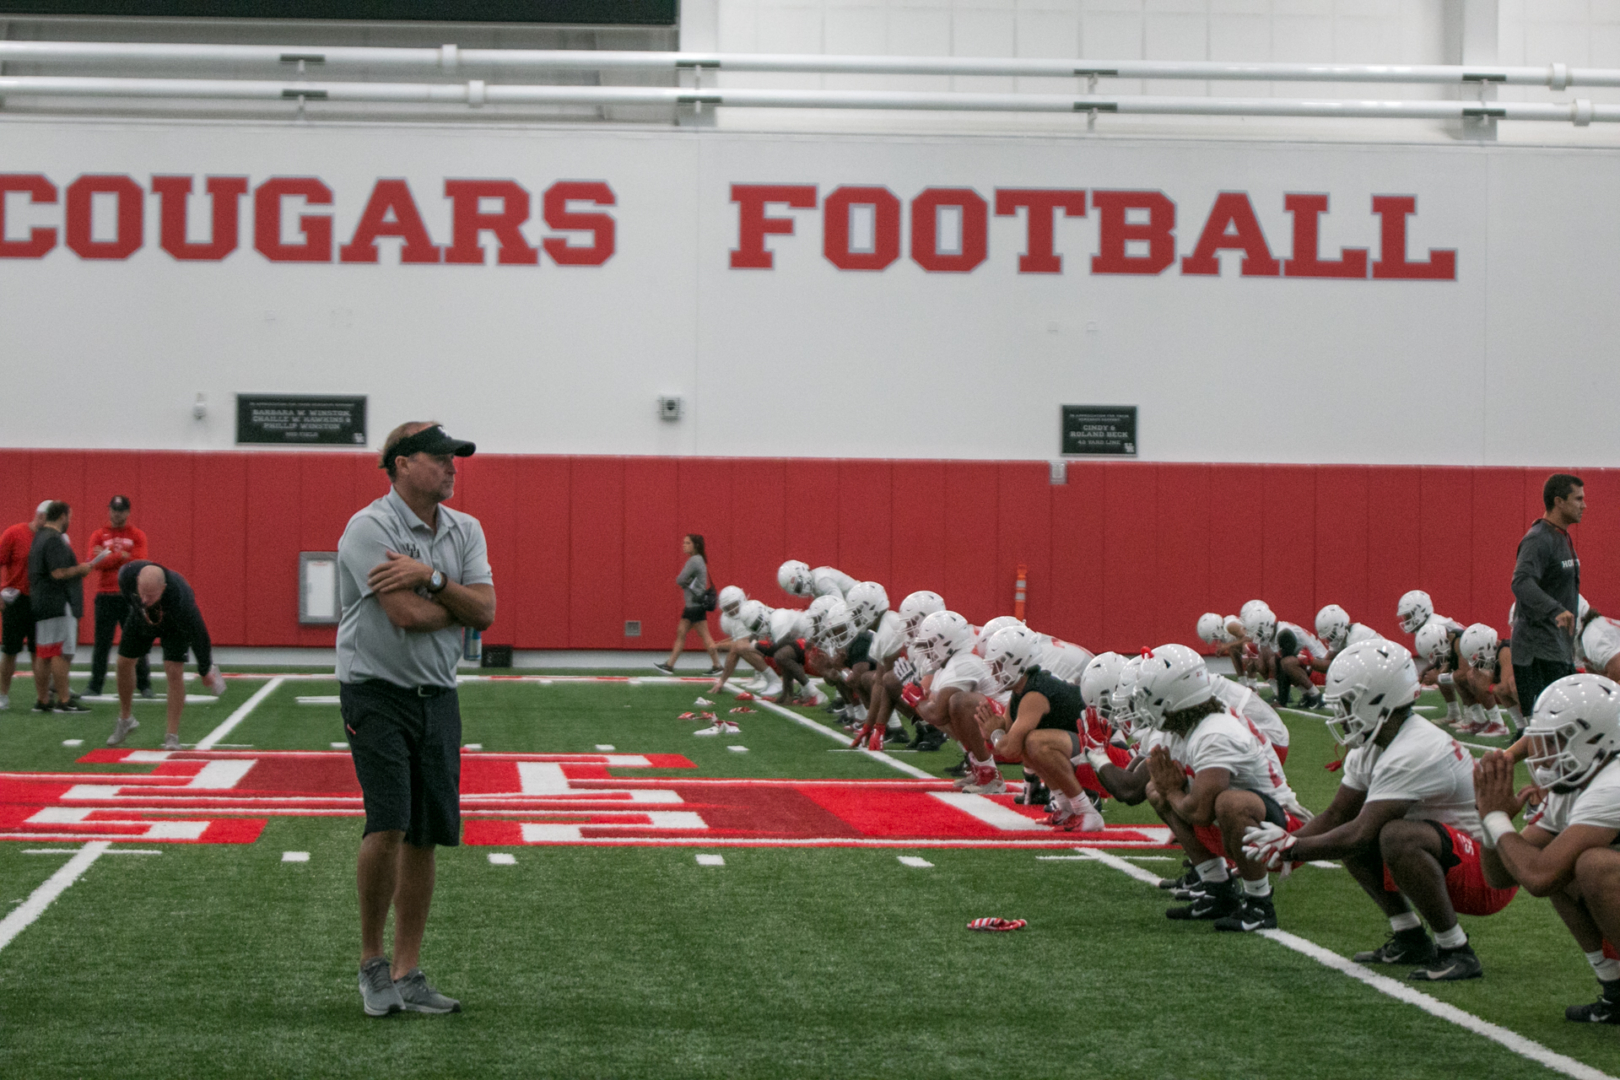 UH head coach Dana Holgorsen looking over his team during last season's training camp practice. | Kathryn Lenihan/The Cougar